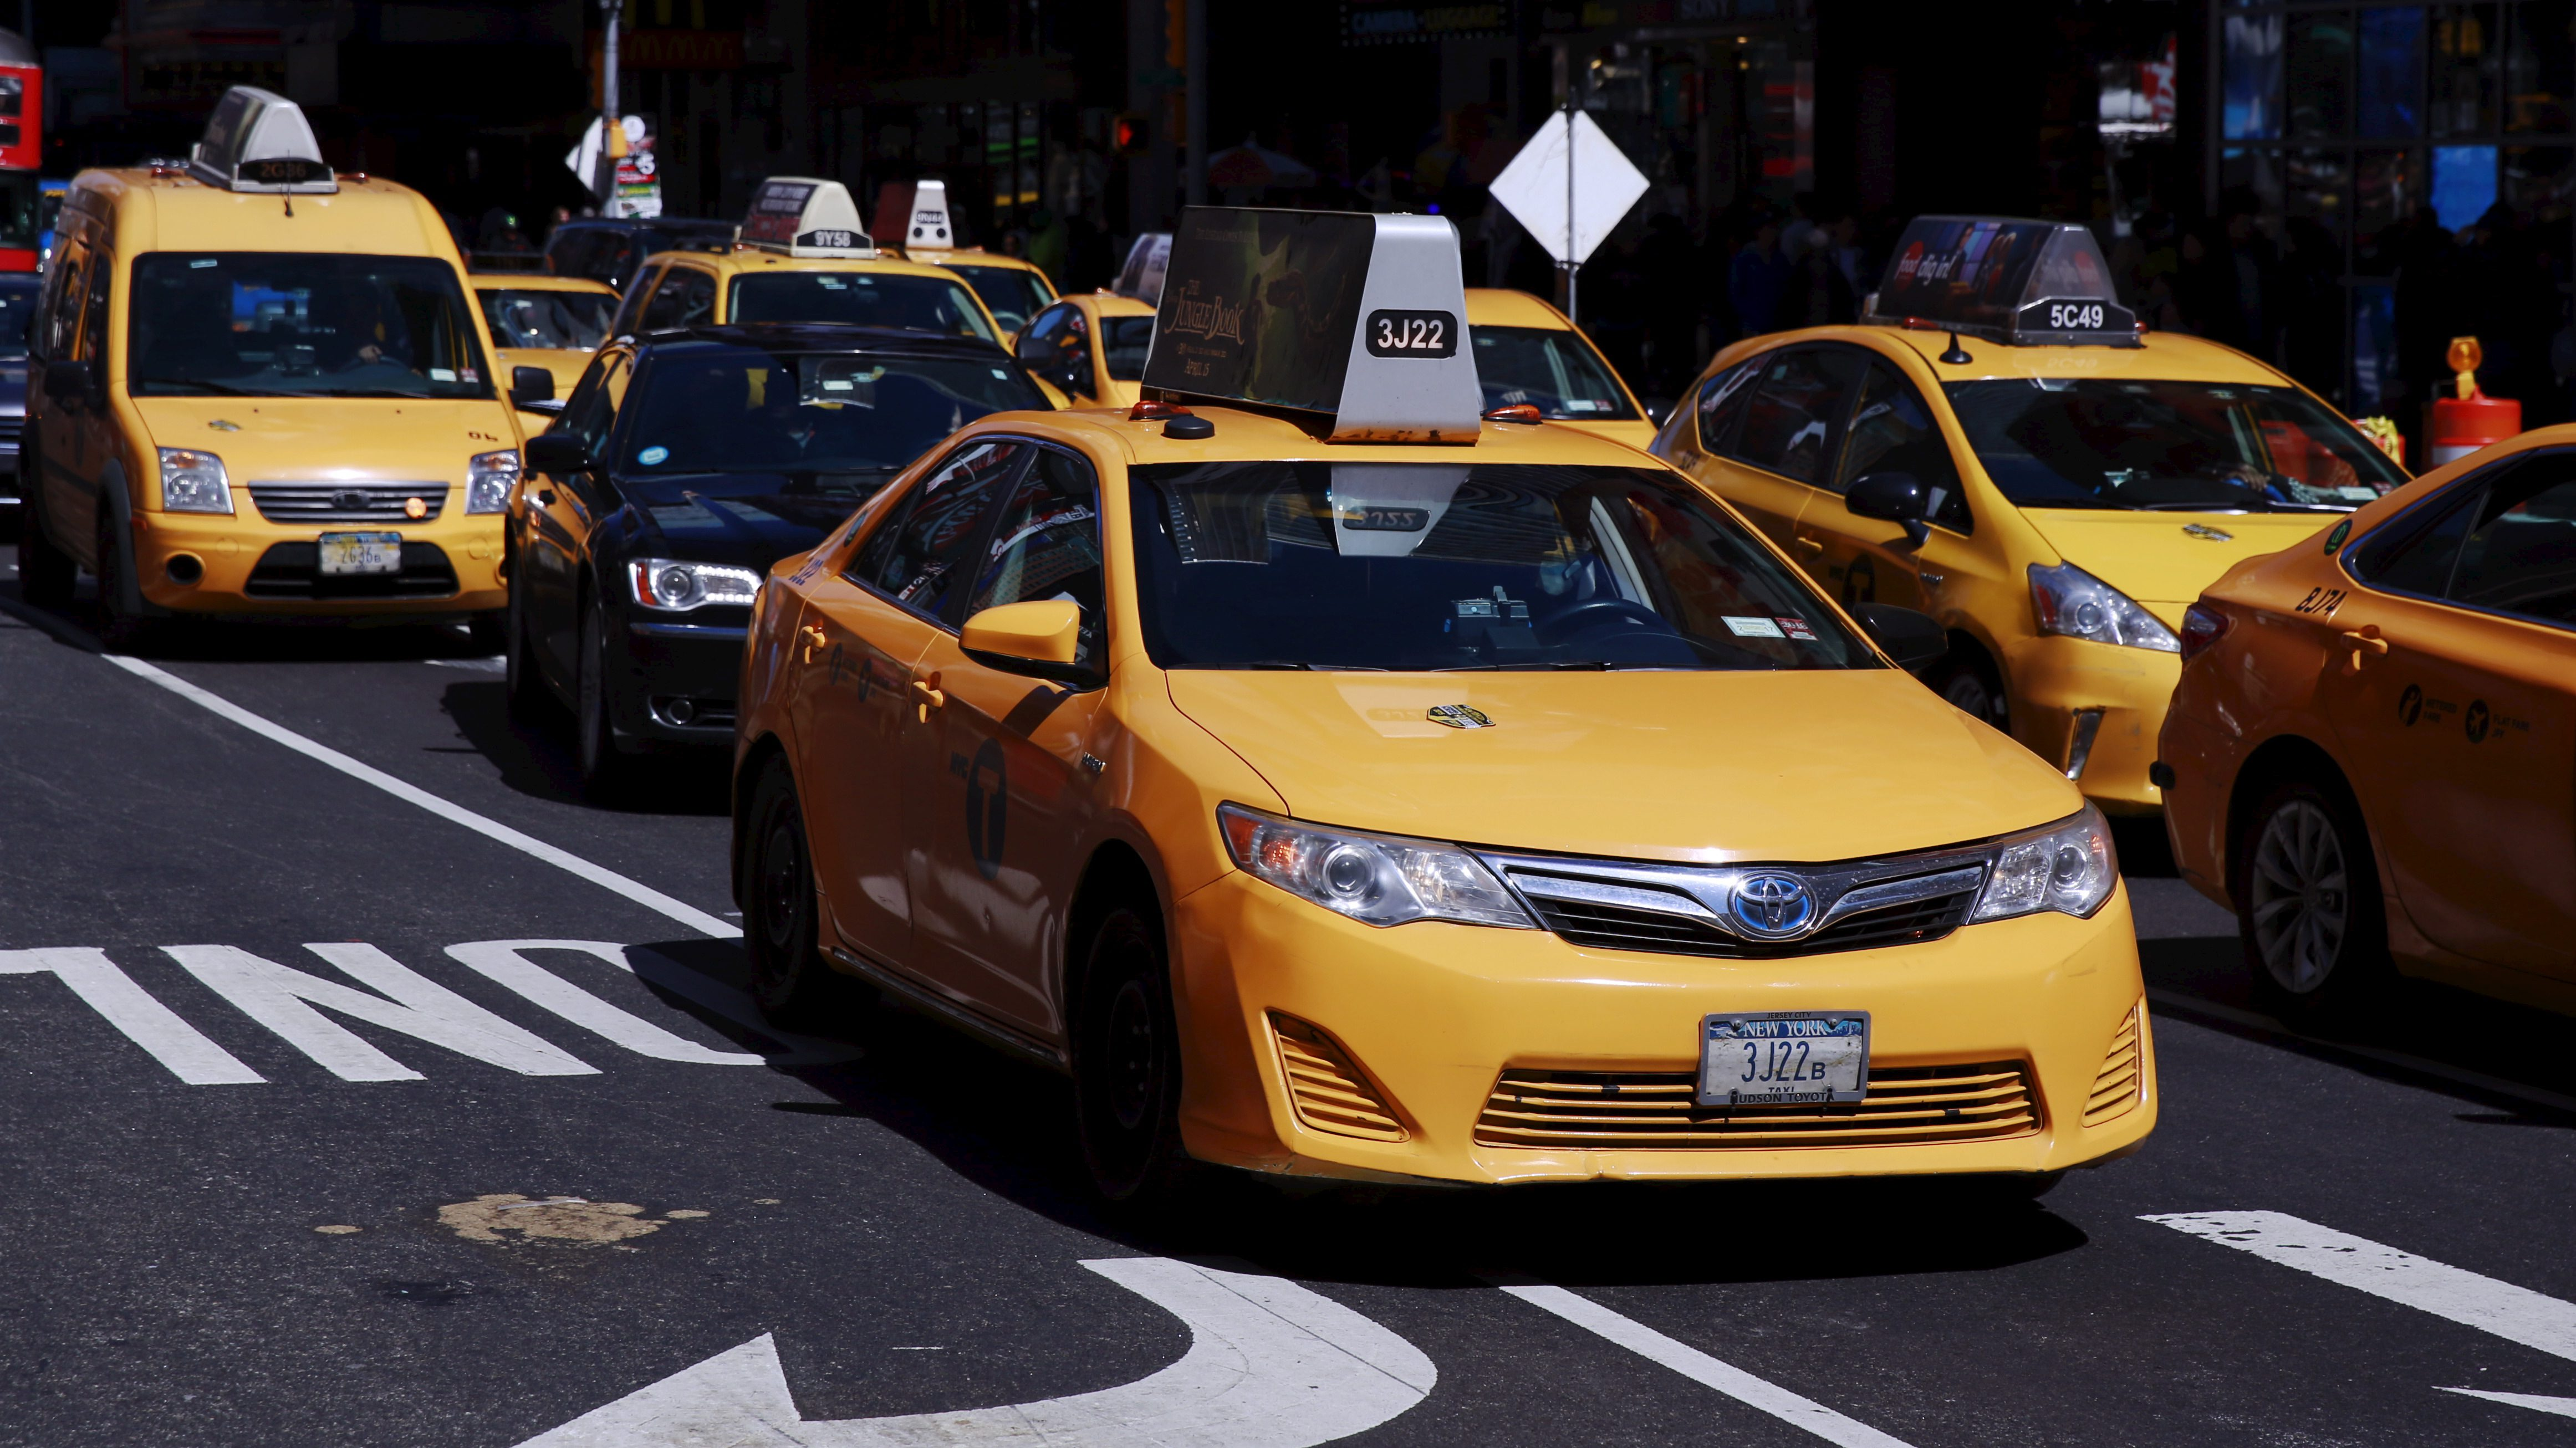 A New York City taxi cab drives through Times Square in New York March 29, 2016.  REUTERS/Lucas Jackson - RTSCPTX